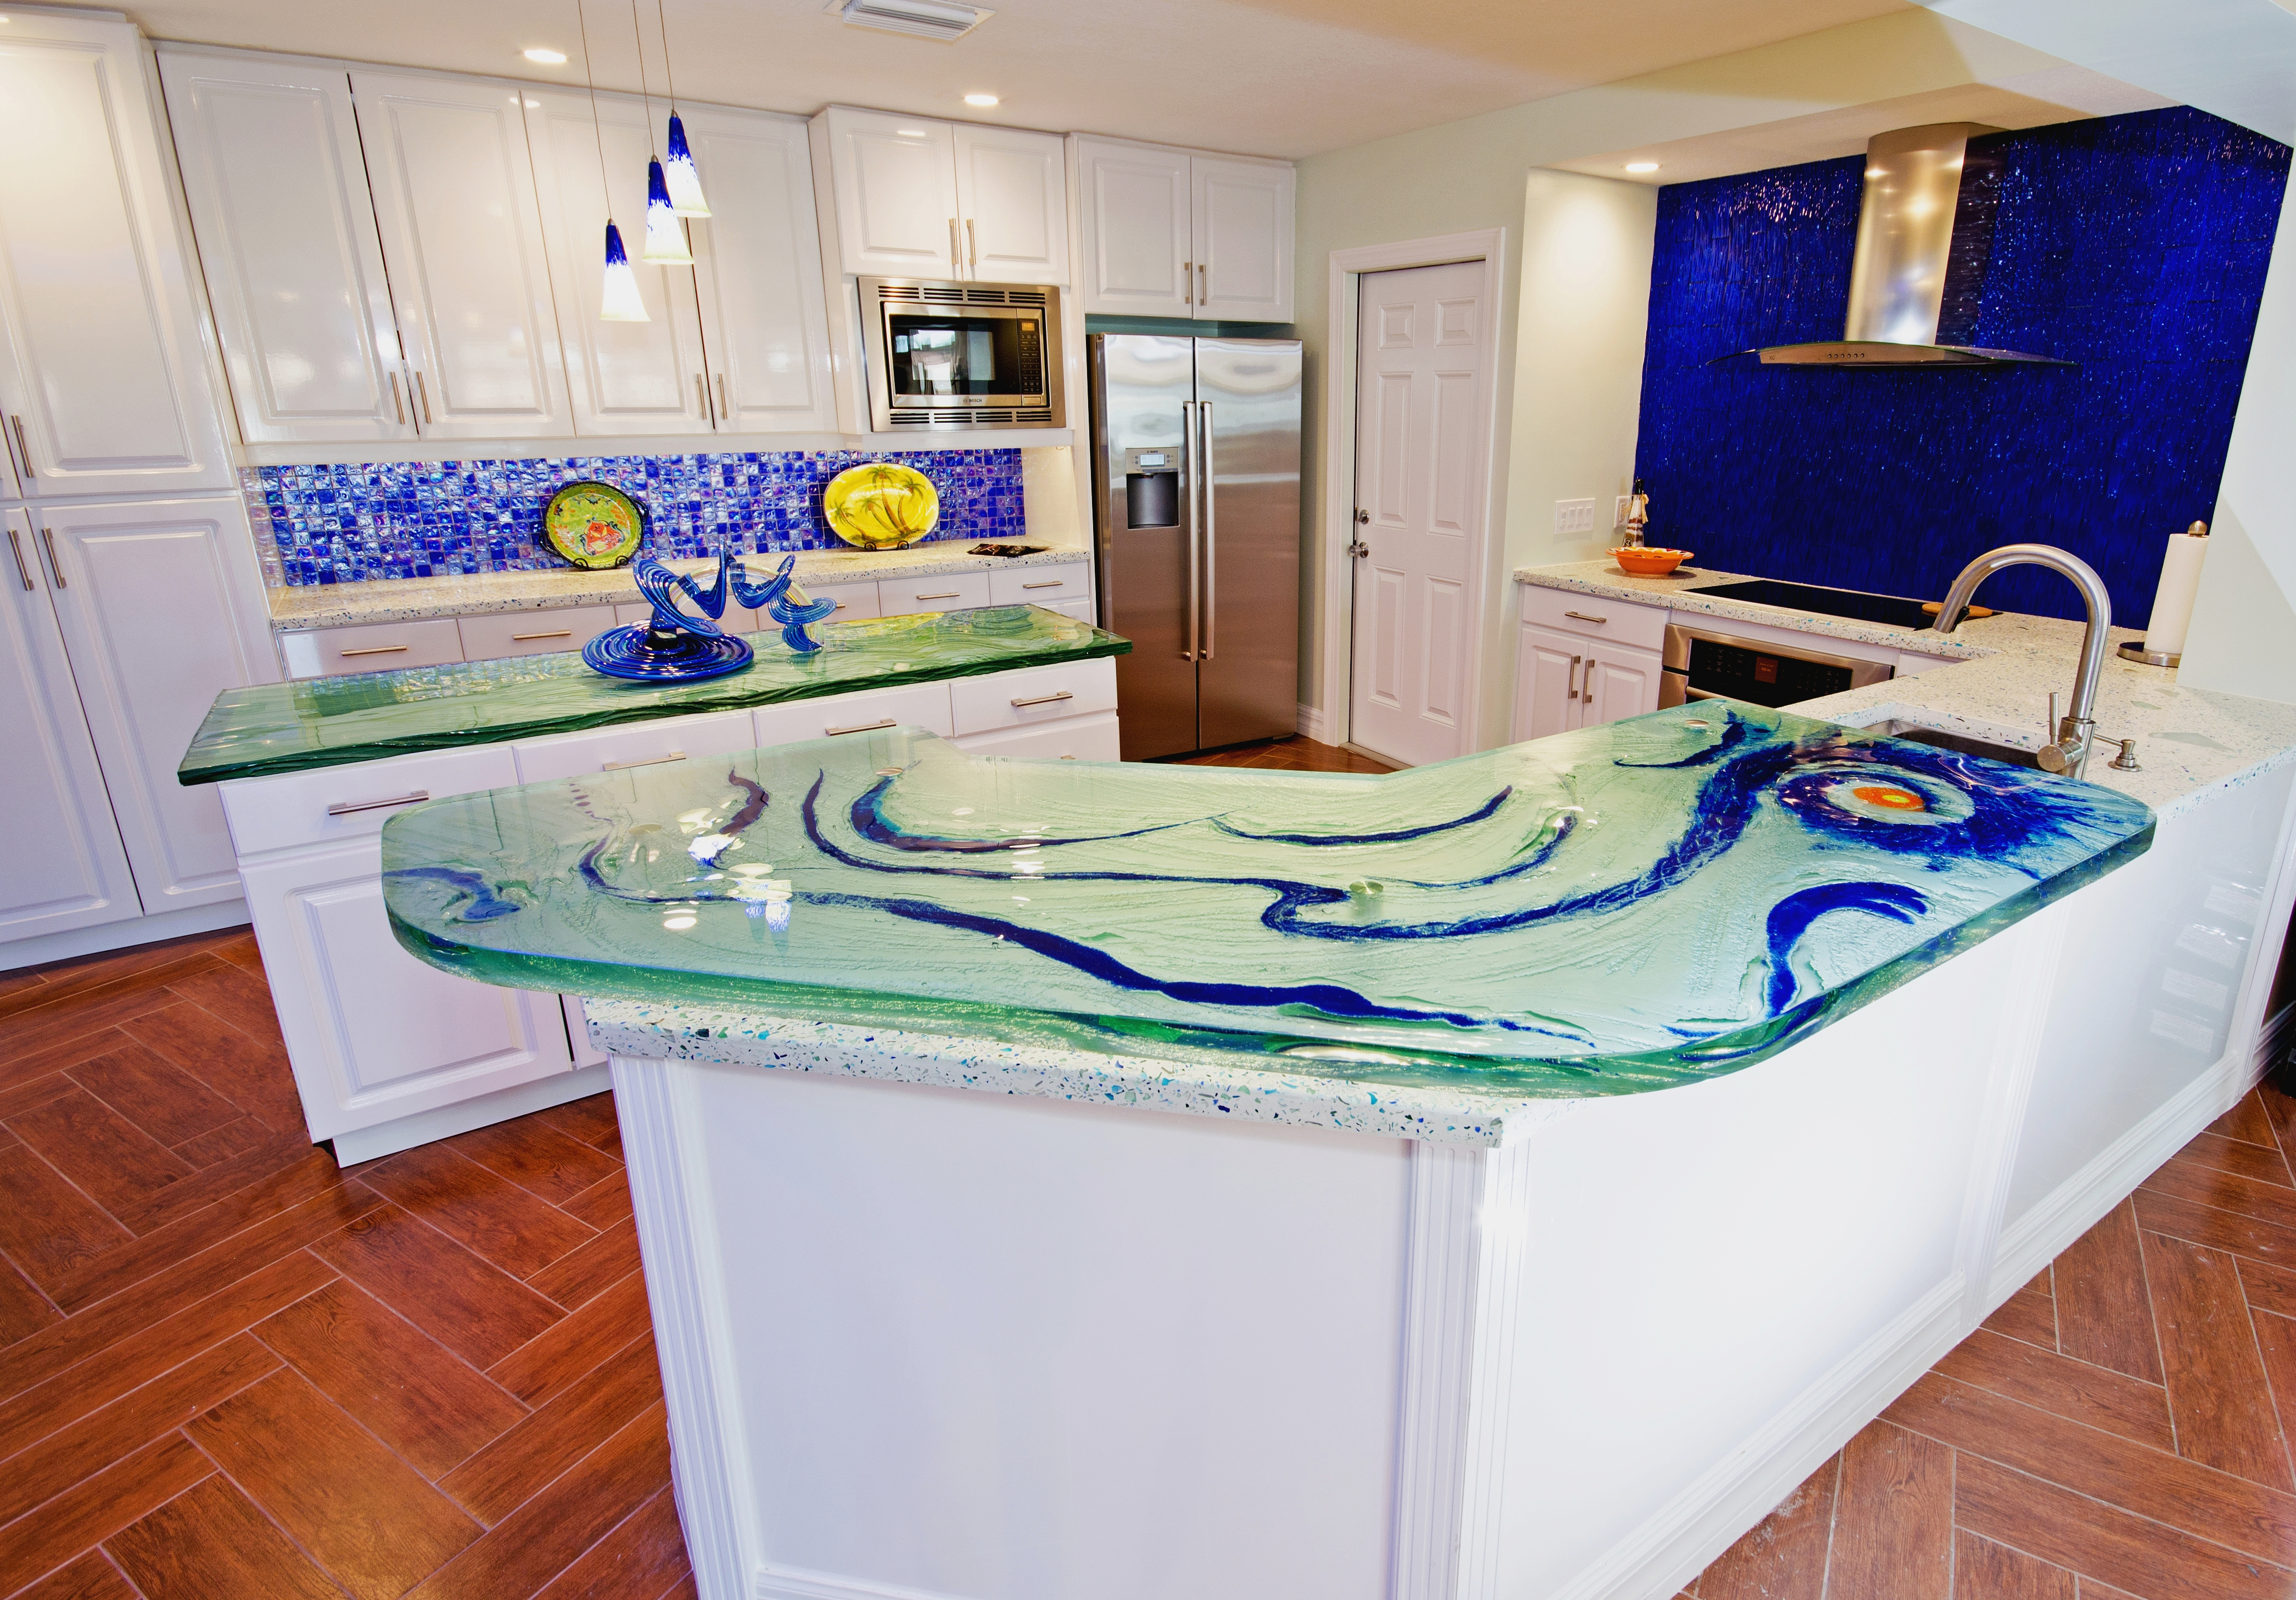 Concrete Countertop Manufacturers Downing Designs Video And Image Gallery Proview